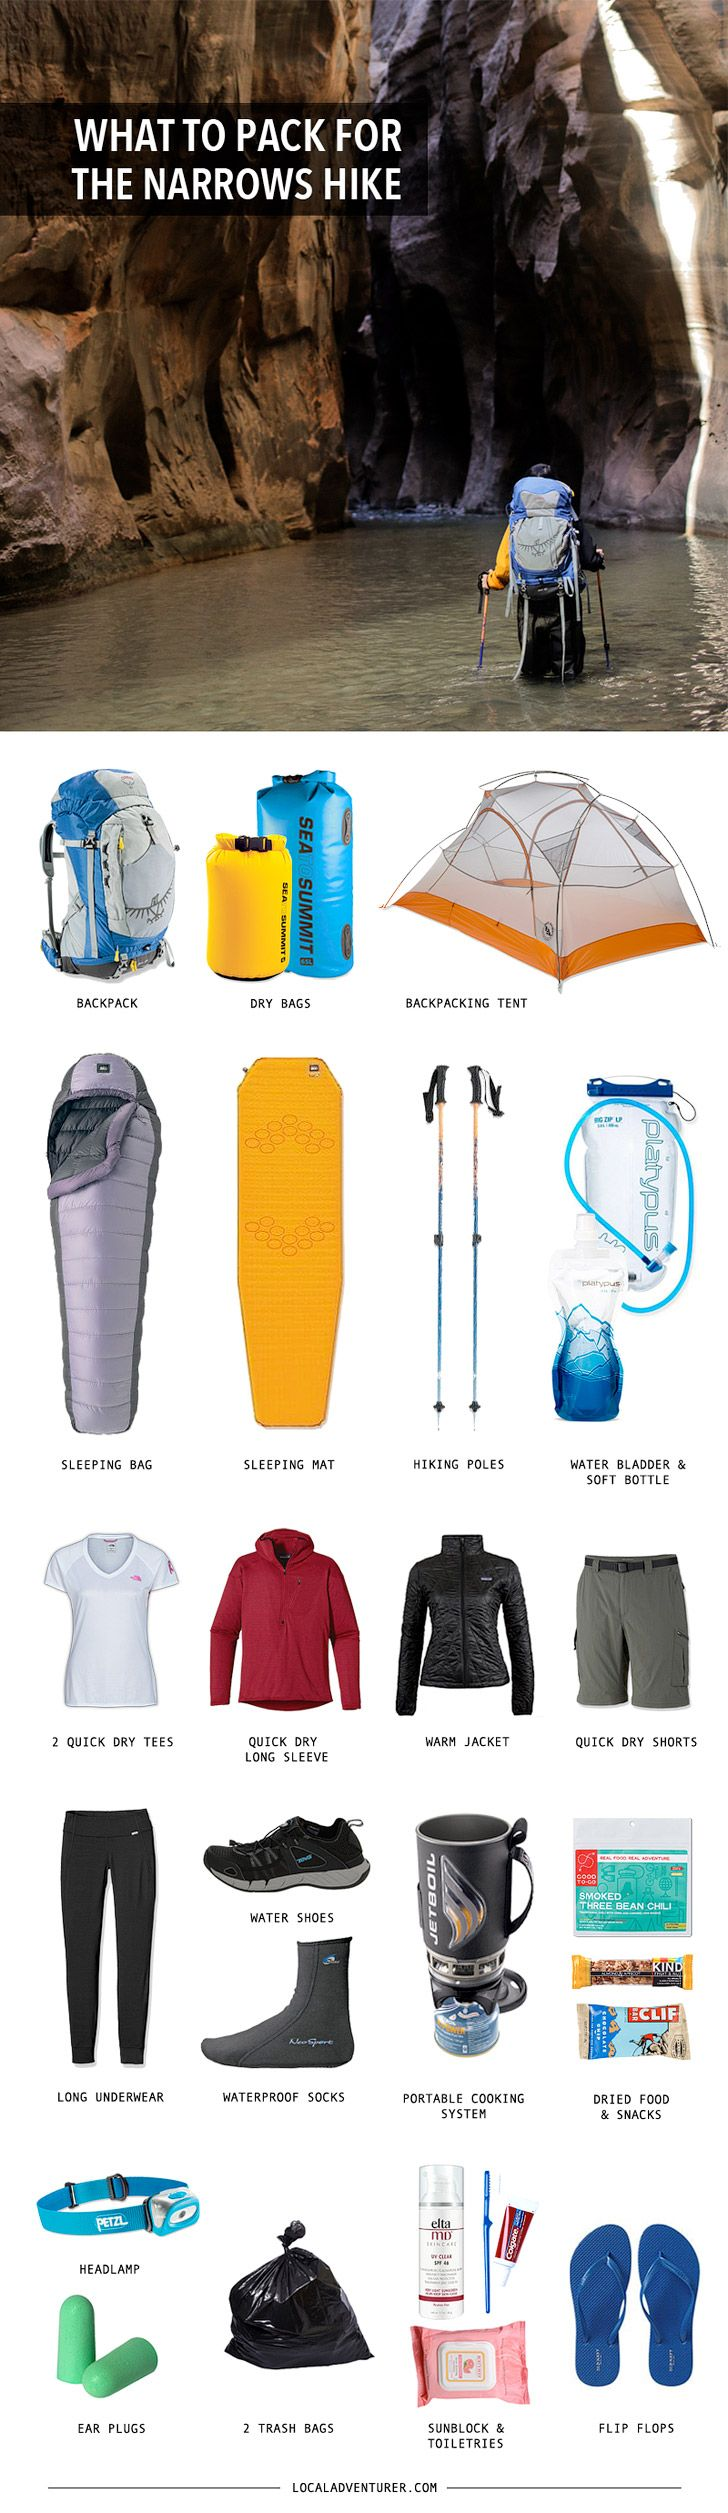 17 Best ideas about Backpacking Checklist on Pinterest ...